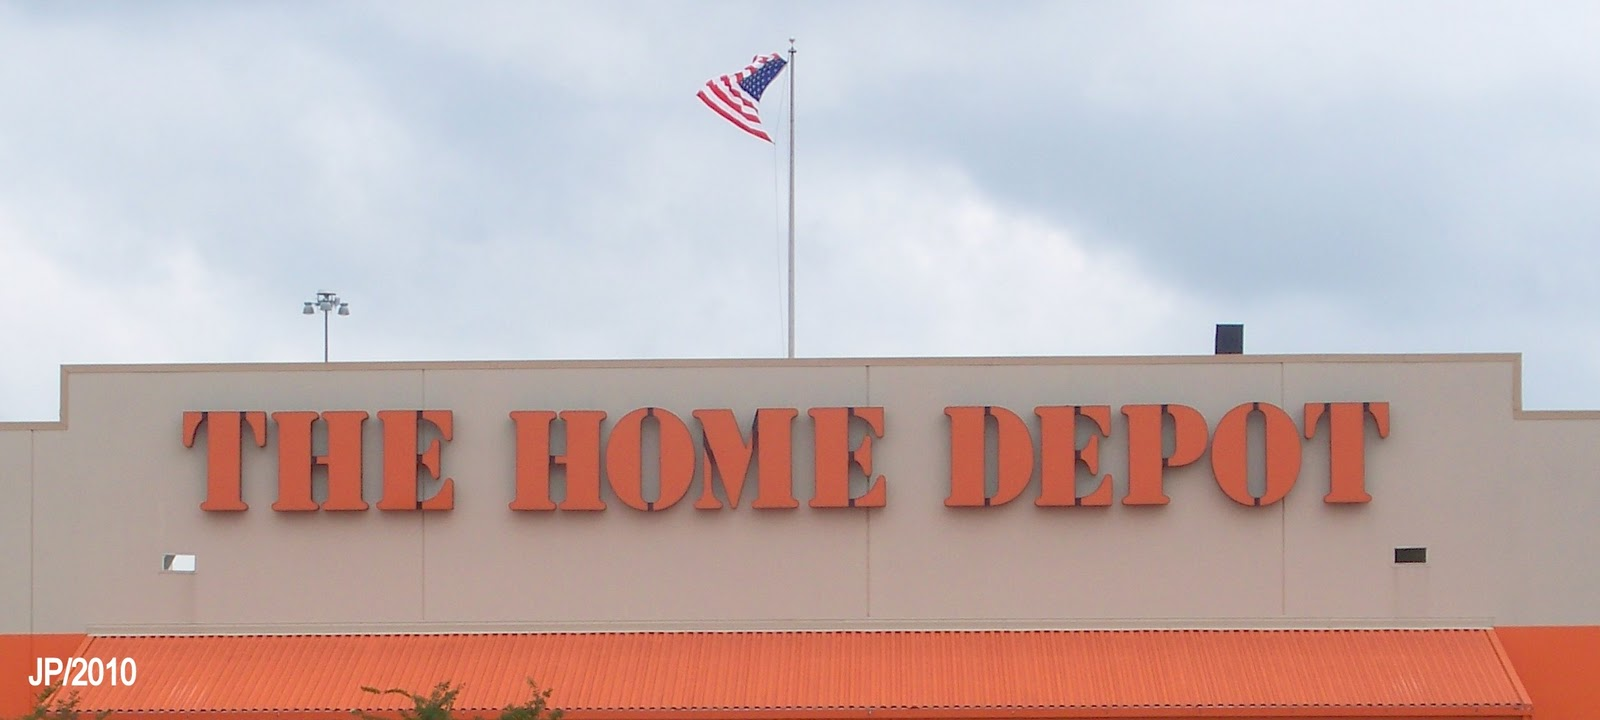 Lake city florida columbia restaurant attorney bank hotel for Shop home depot